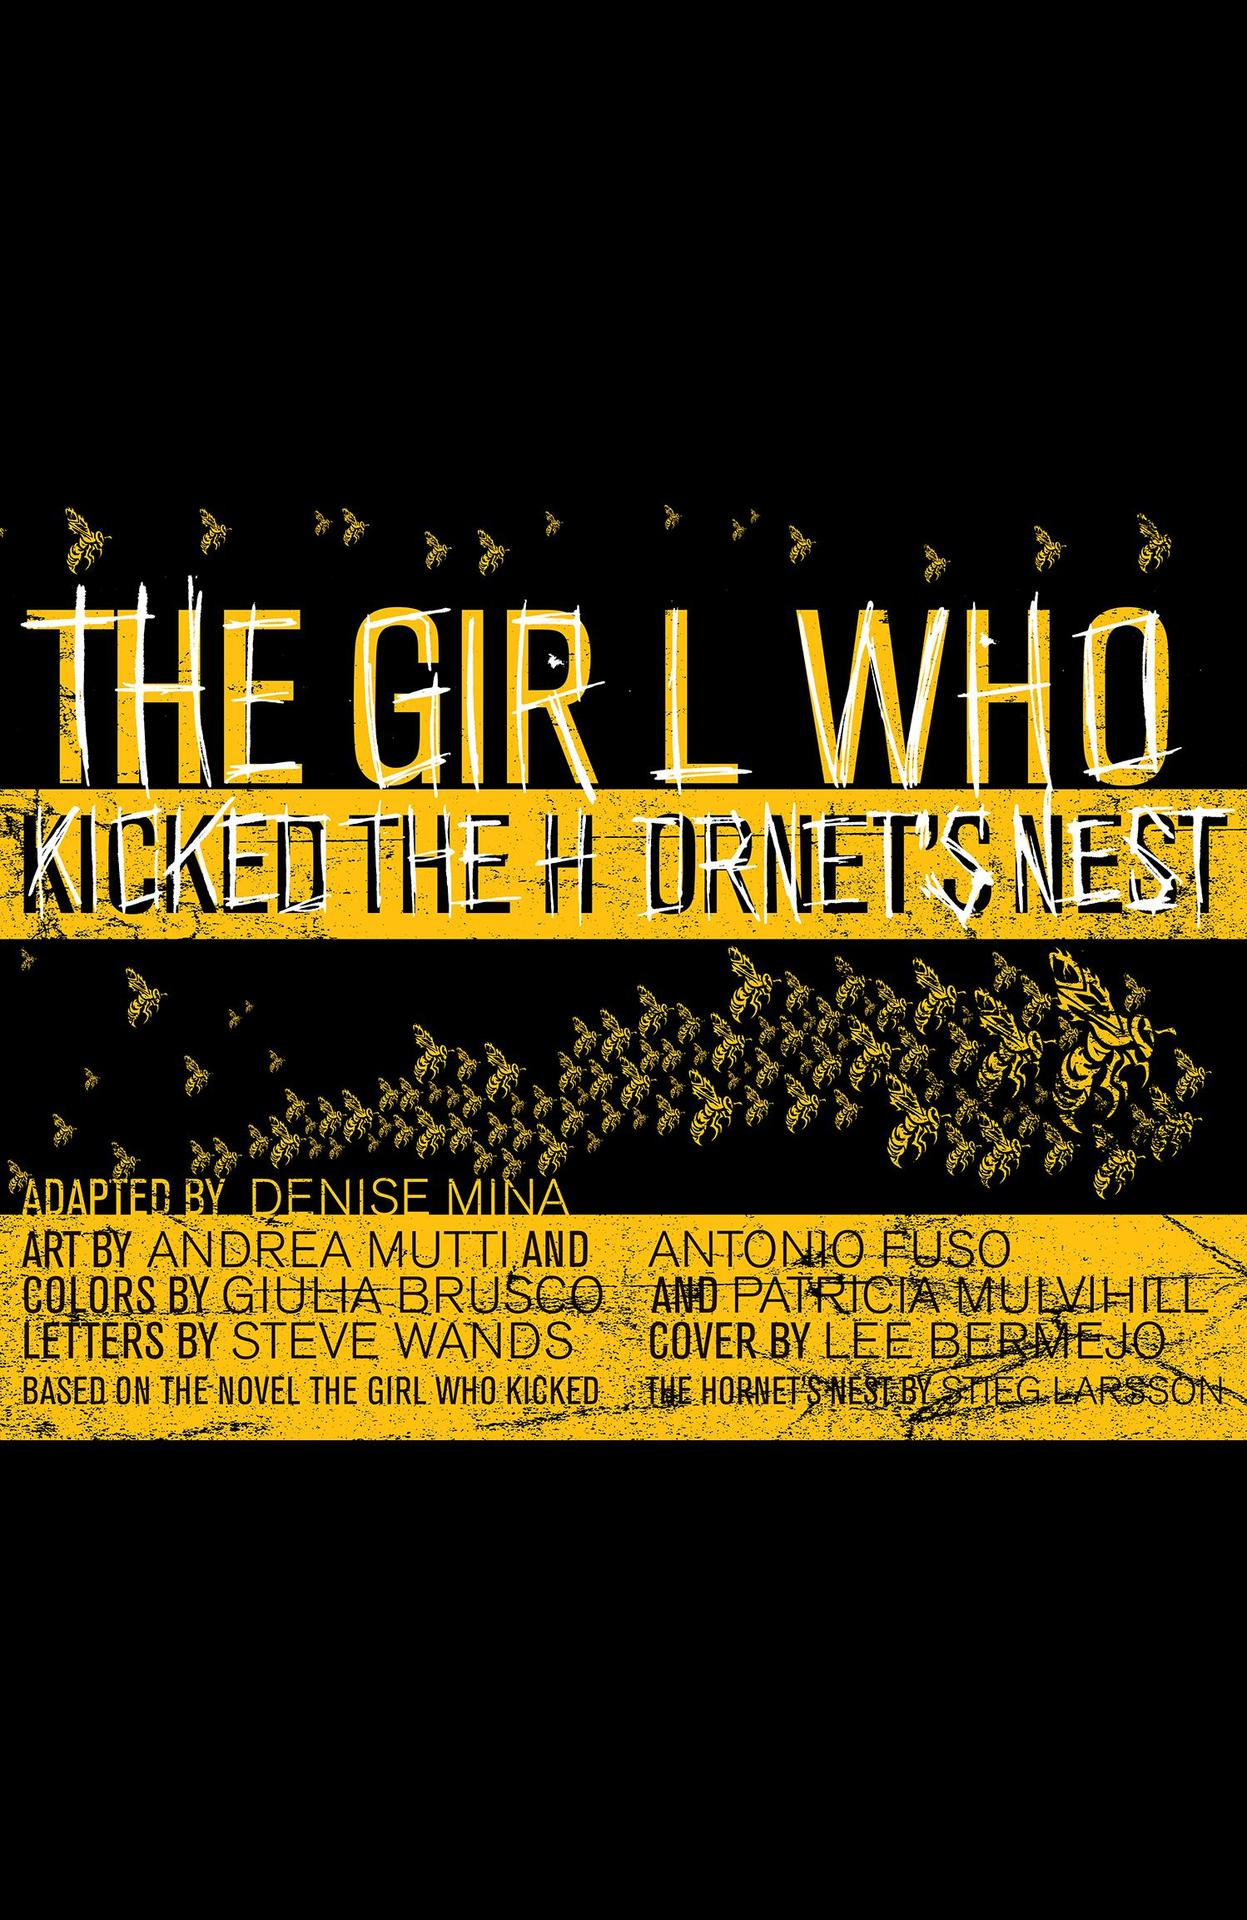 Read online The Girl Who Kicked The Hornet's Nest comic -  Issue # TPB - 3